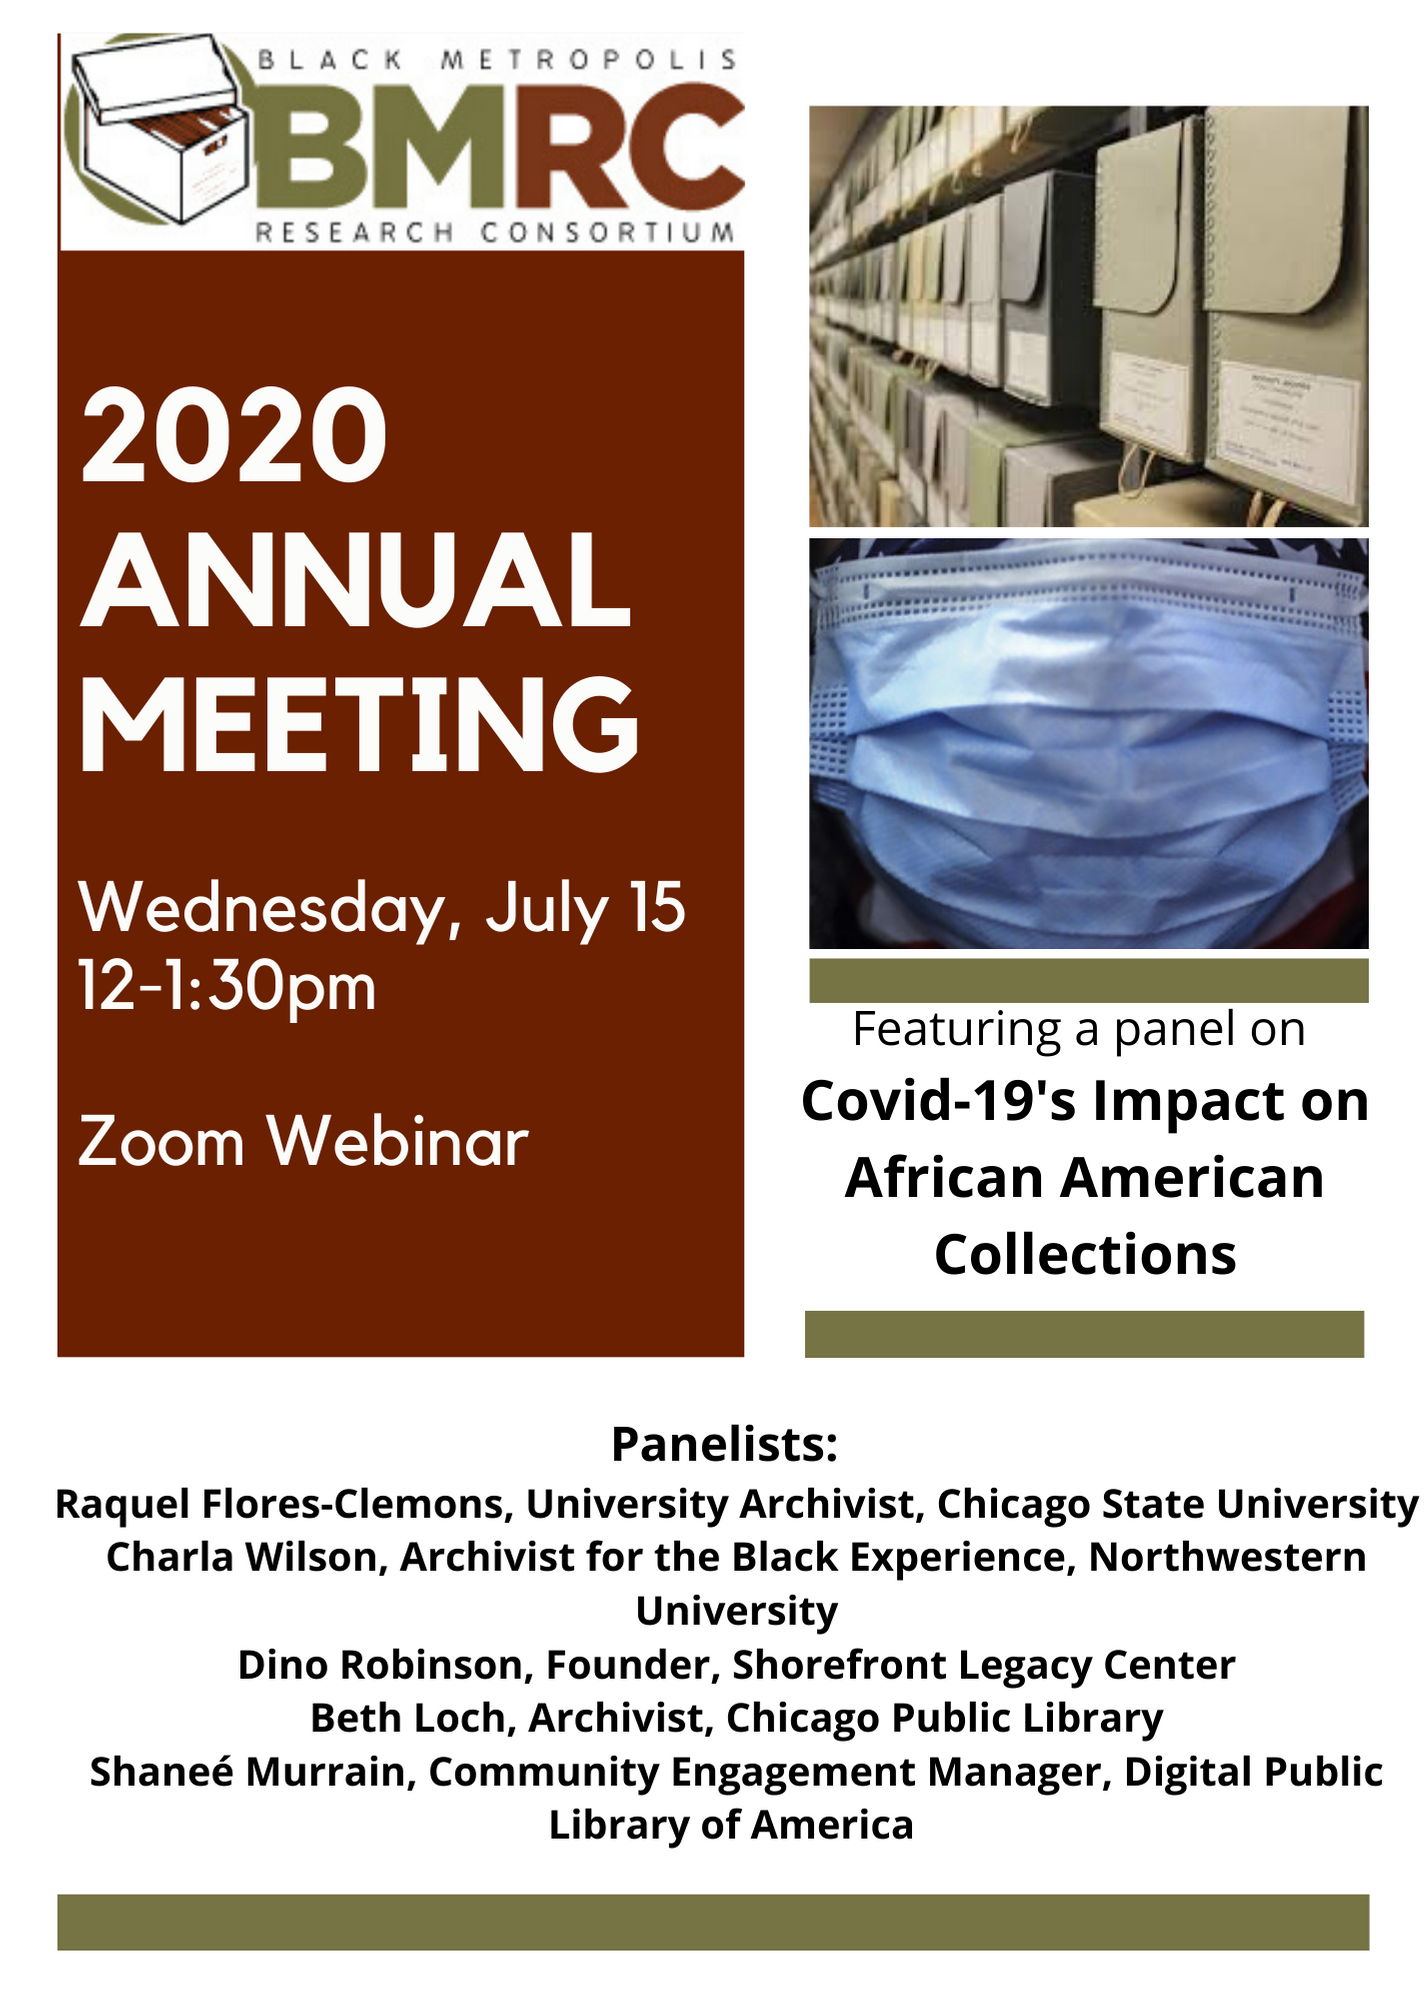 BMRC 2020 Annual Meeting Flyer